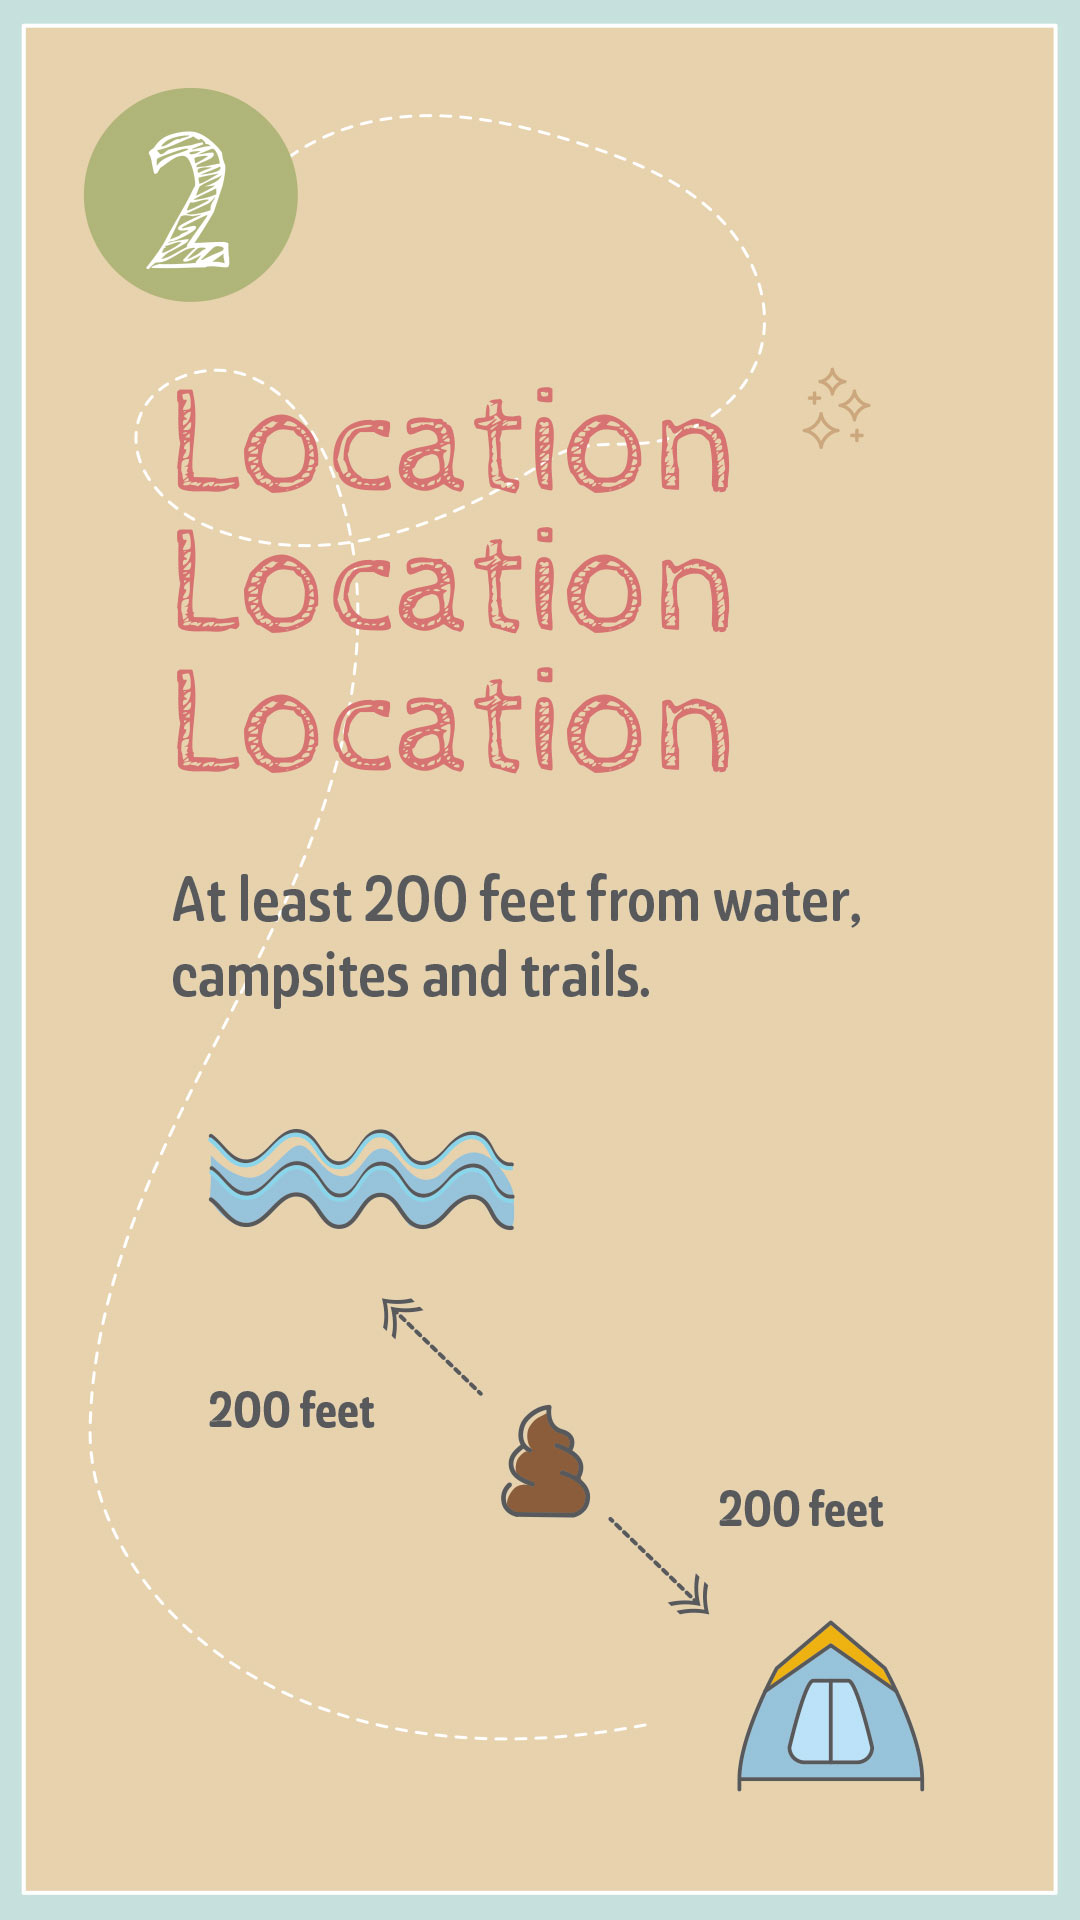 Location of Poop